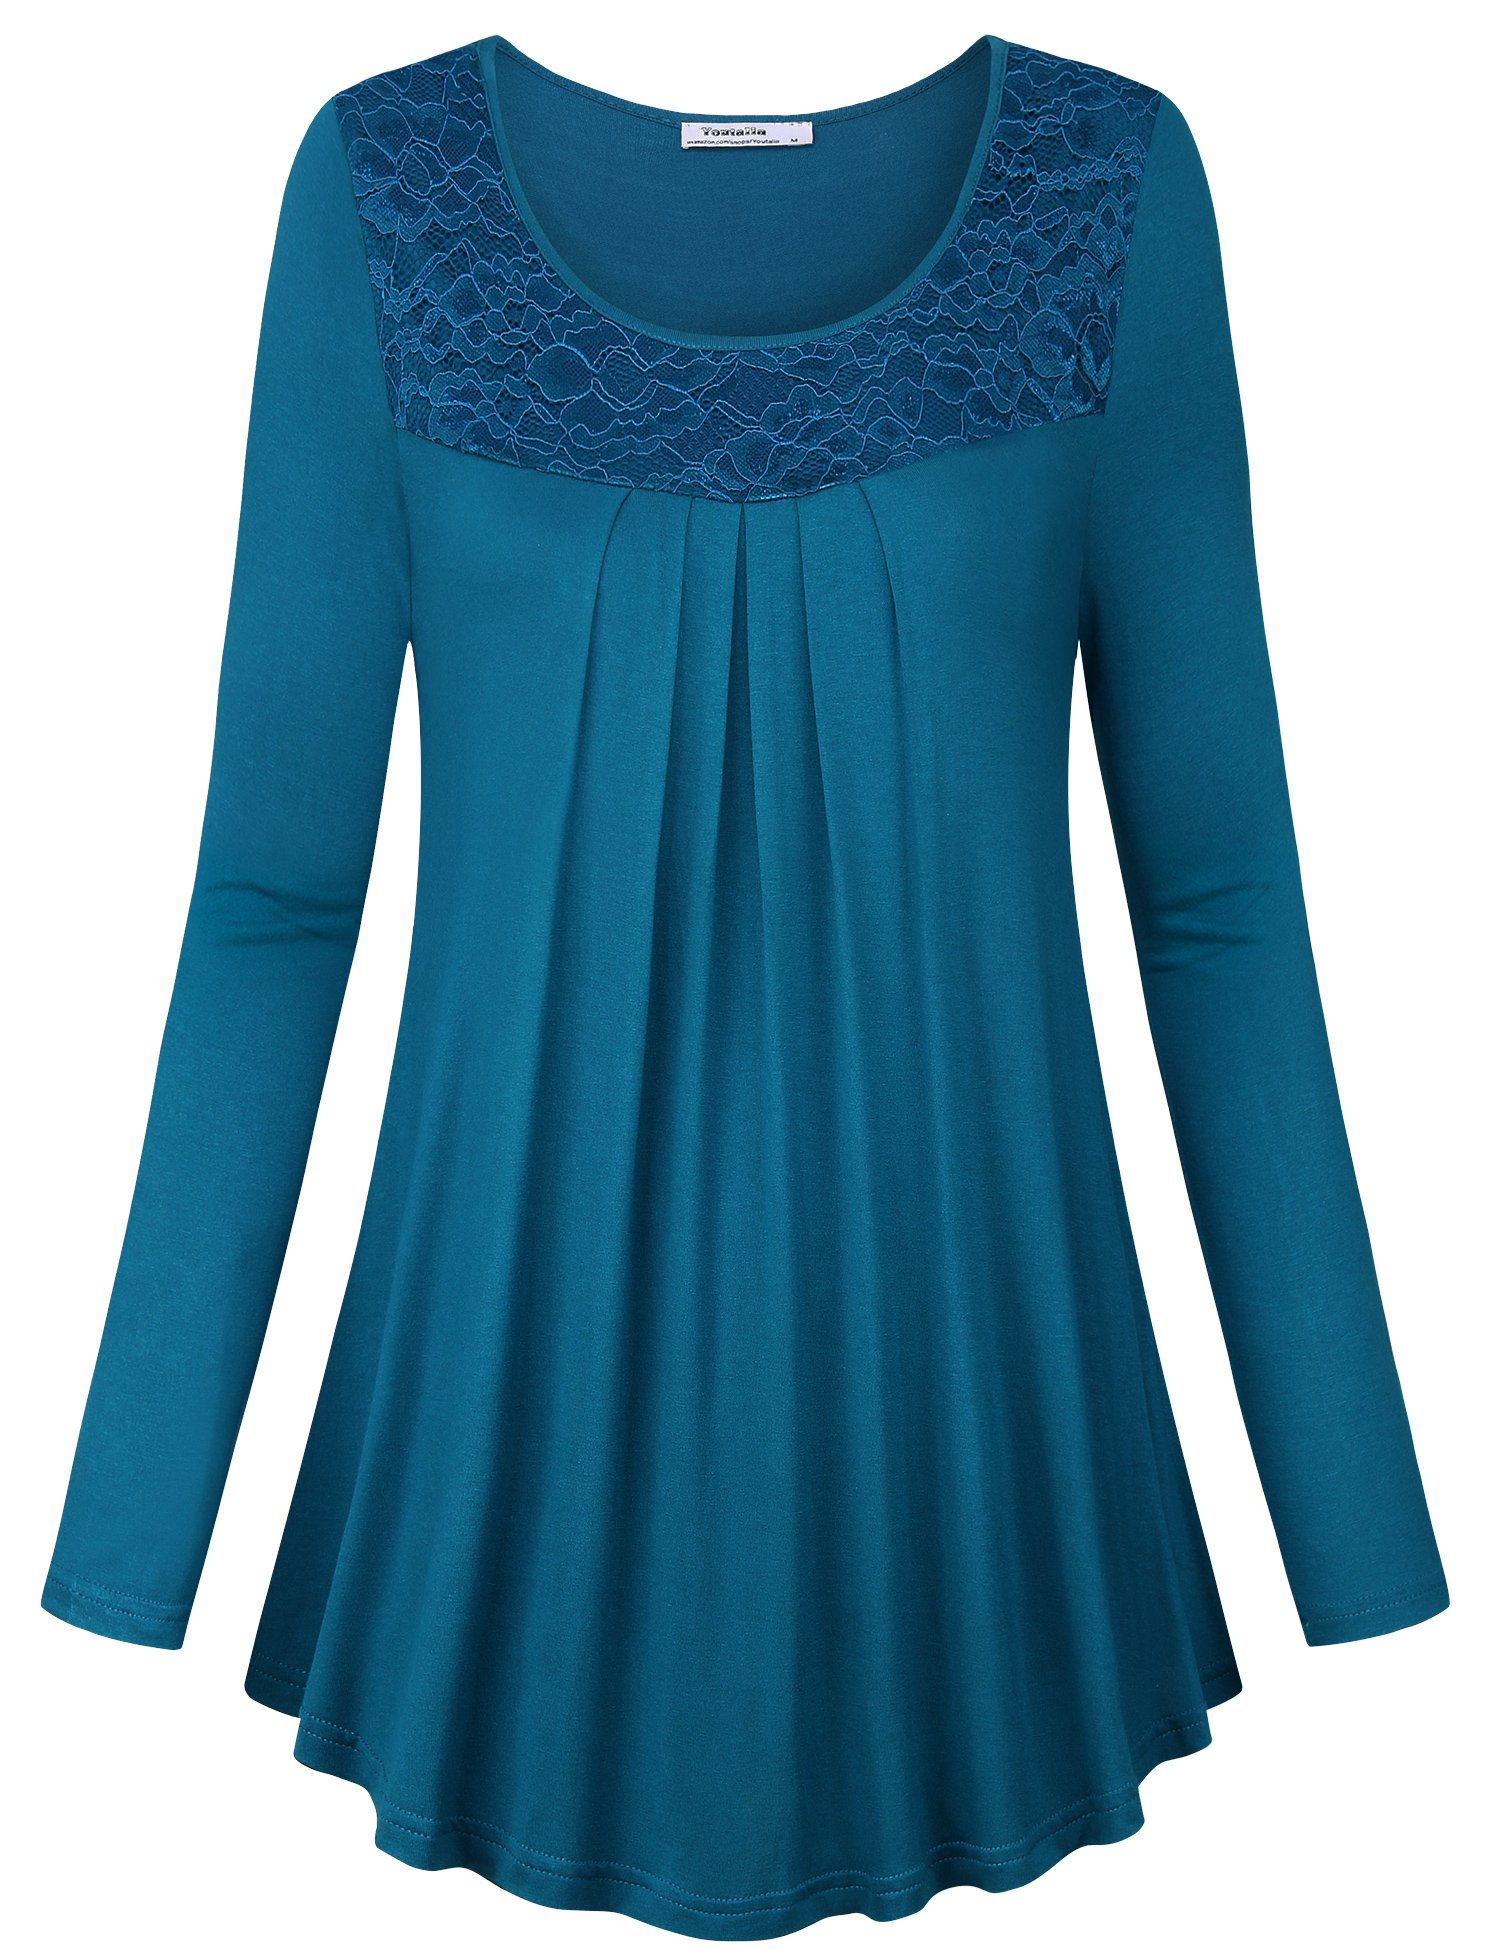 Youtalia Tops for Women, Ladies Long Sleeve Round Neck Soft Elastic Knit Loose Fit Flowy Flared Hem Casual Tunic Tops with Laces,Dark Cyan Medium